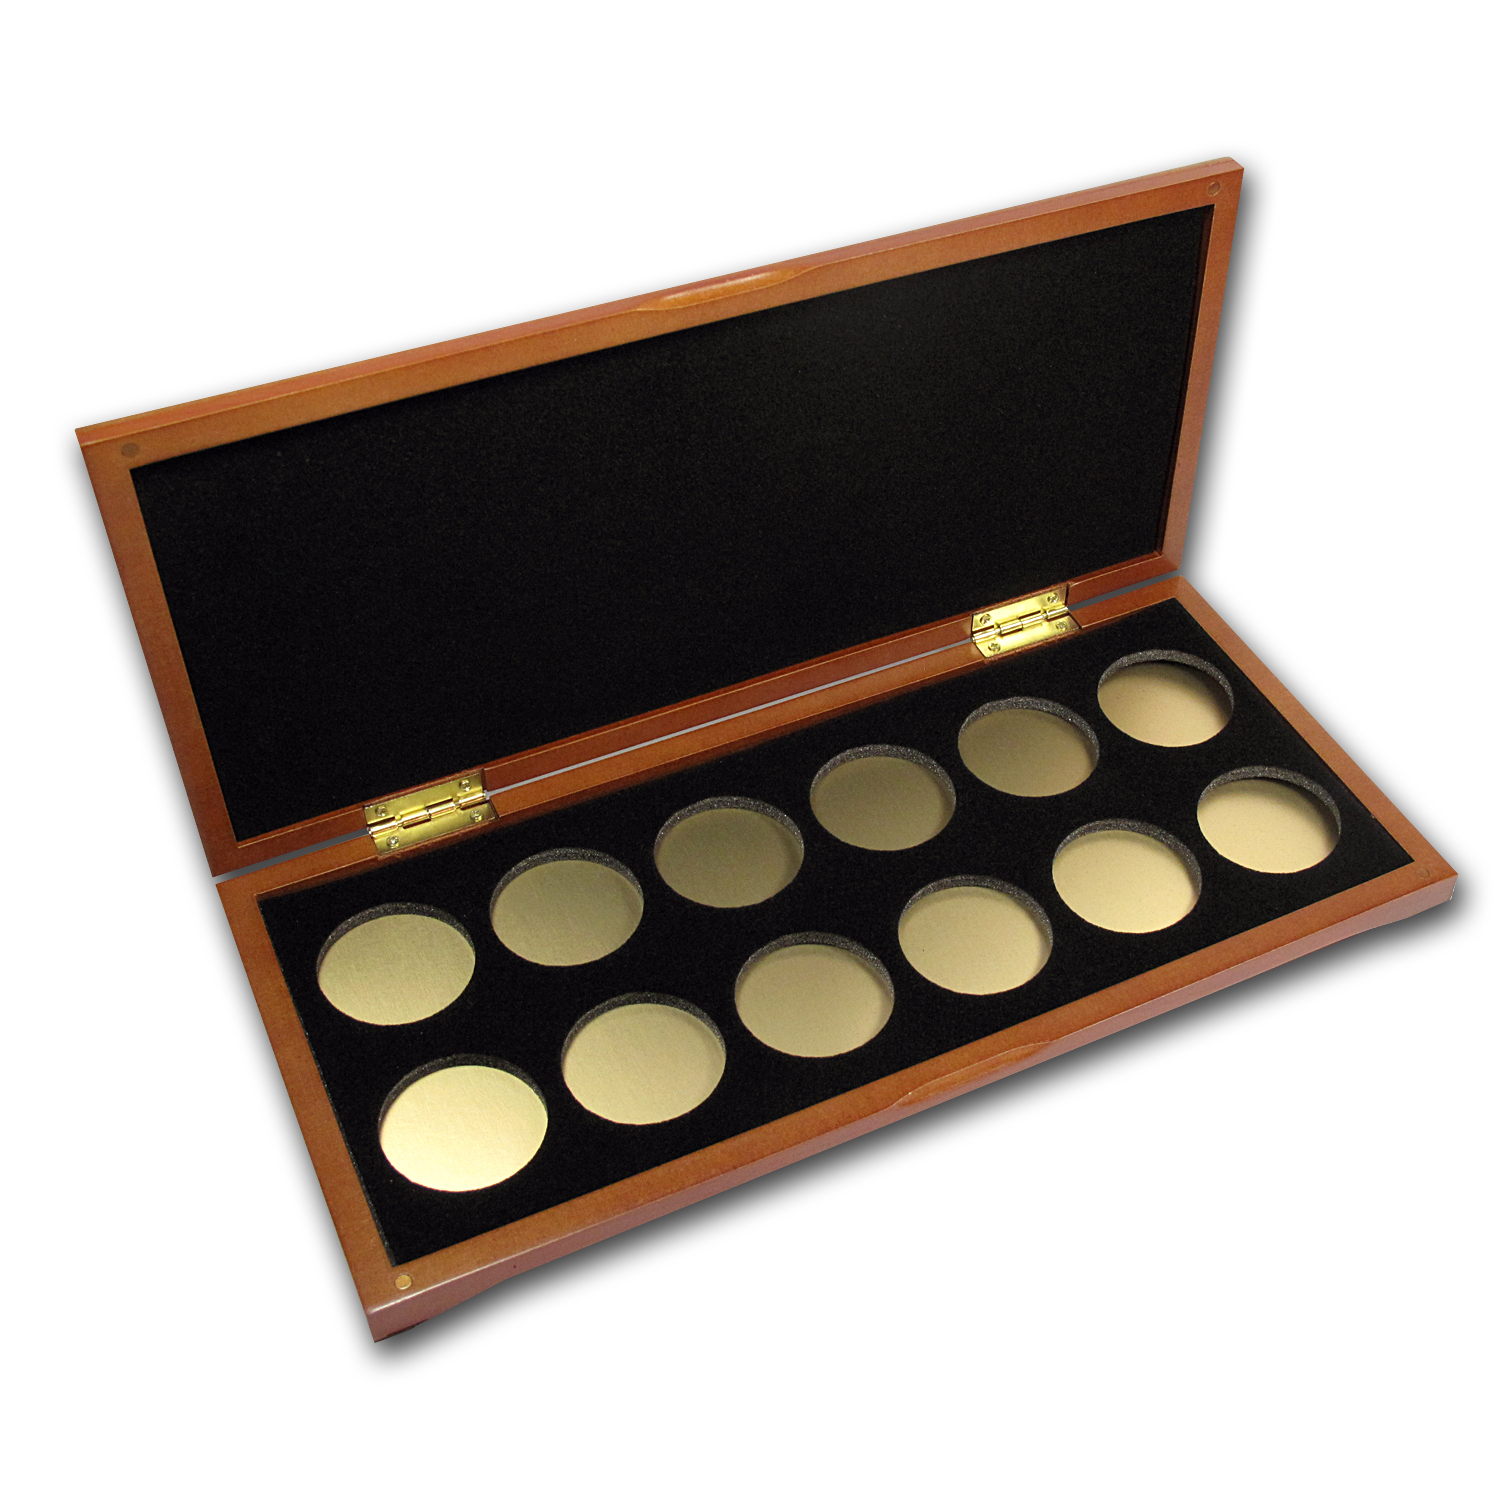 Lunar Series Ii 1 Oz Gold Wood Presentation Box